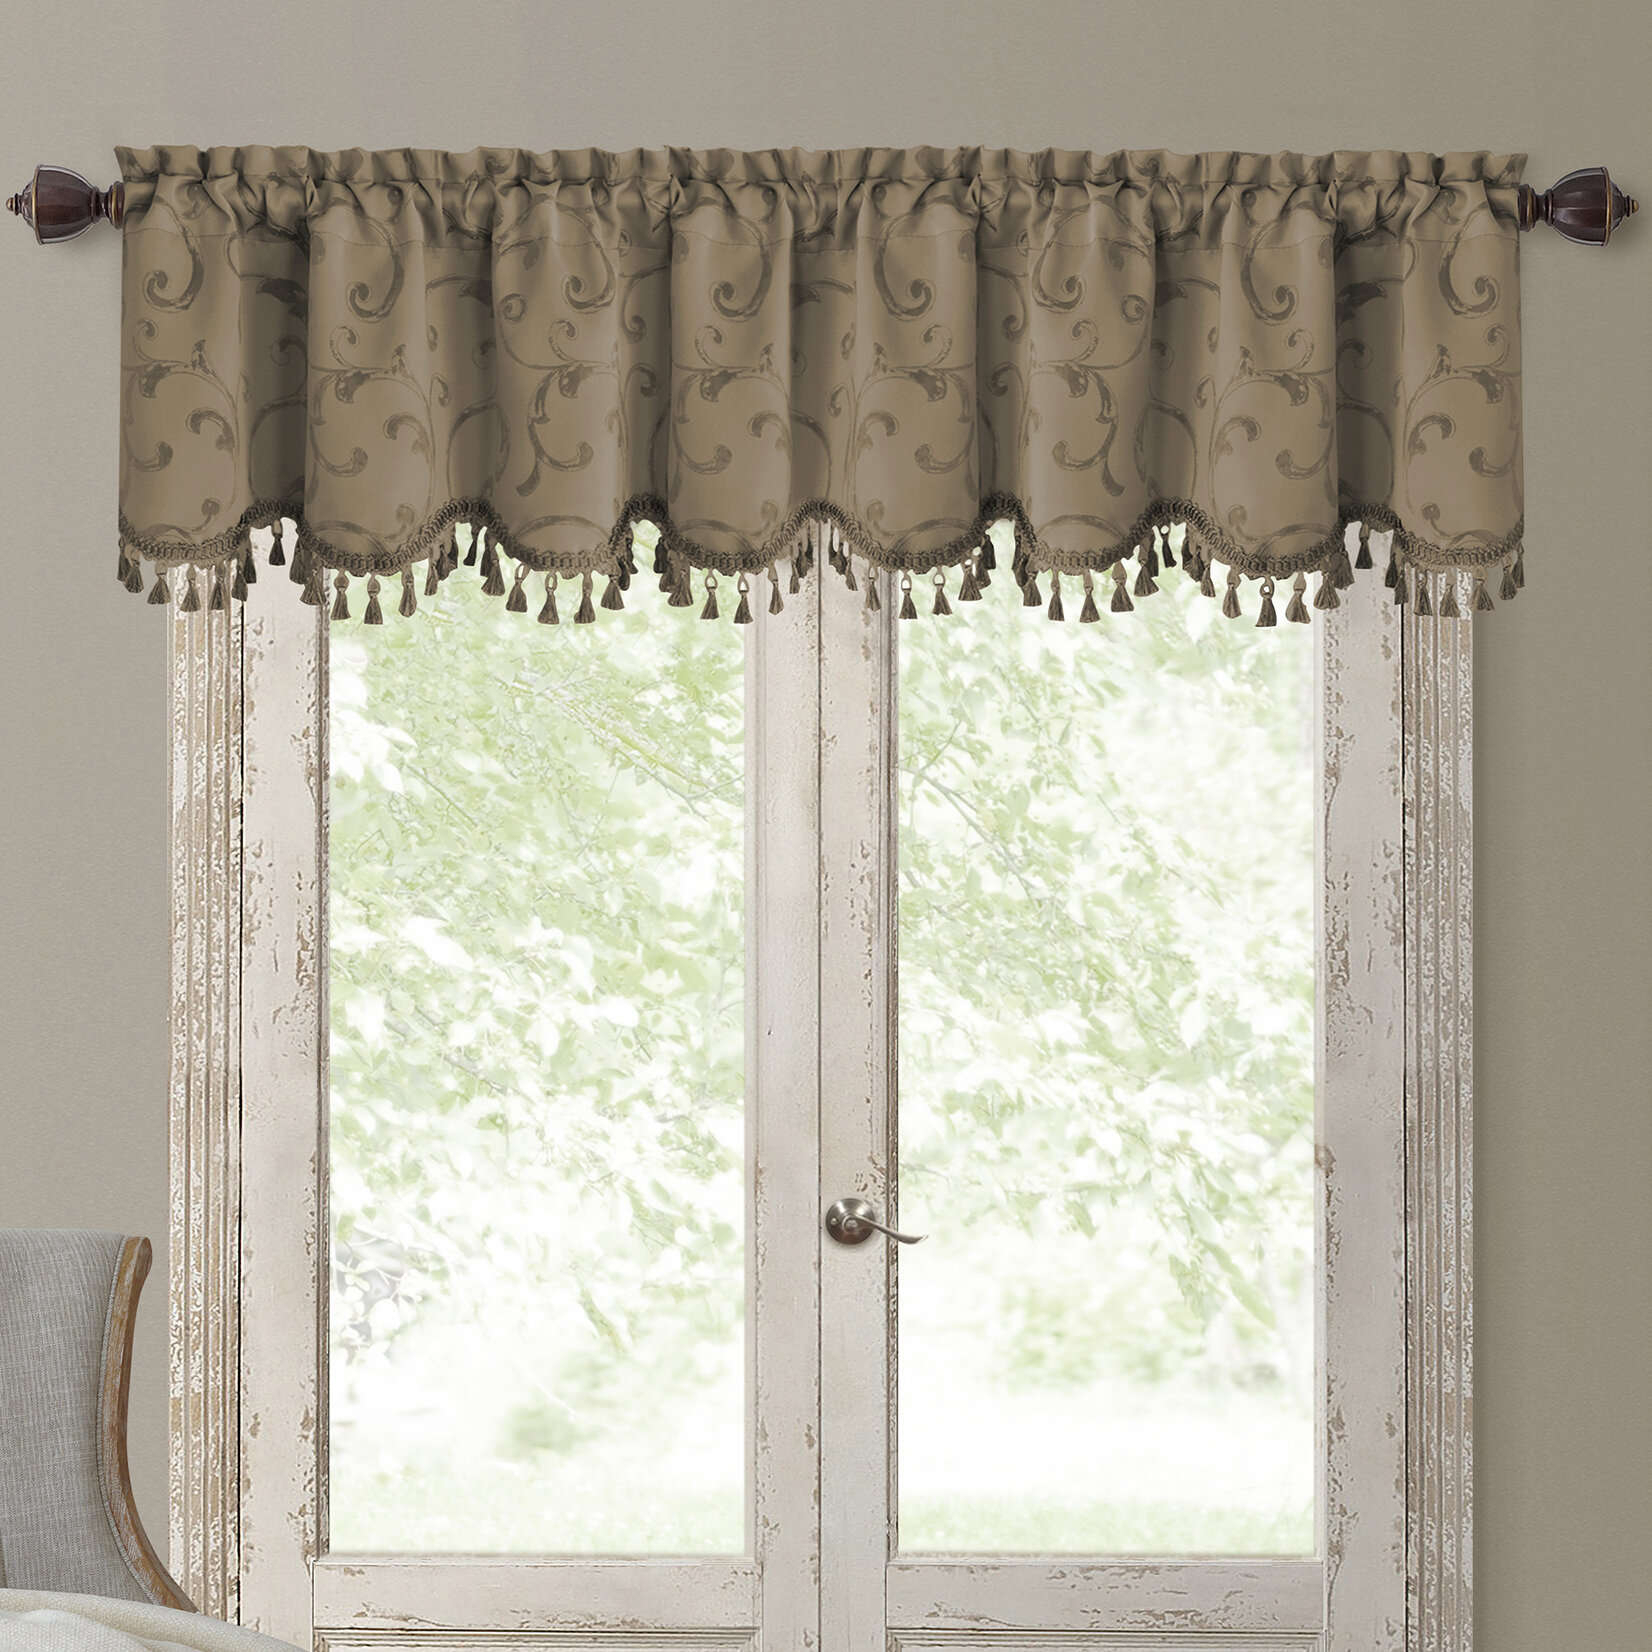 Charming Valance Curtains Interior Enchanting Black And With Regard To Classic Black And White Curtain Tiers (View 8 of 20)